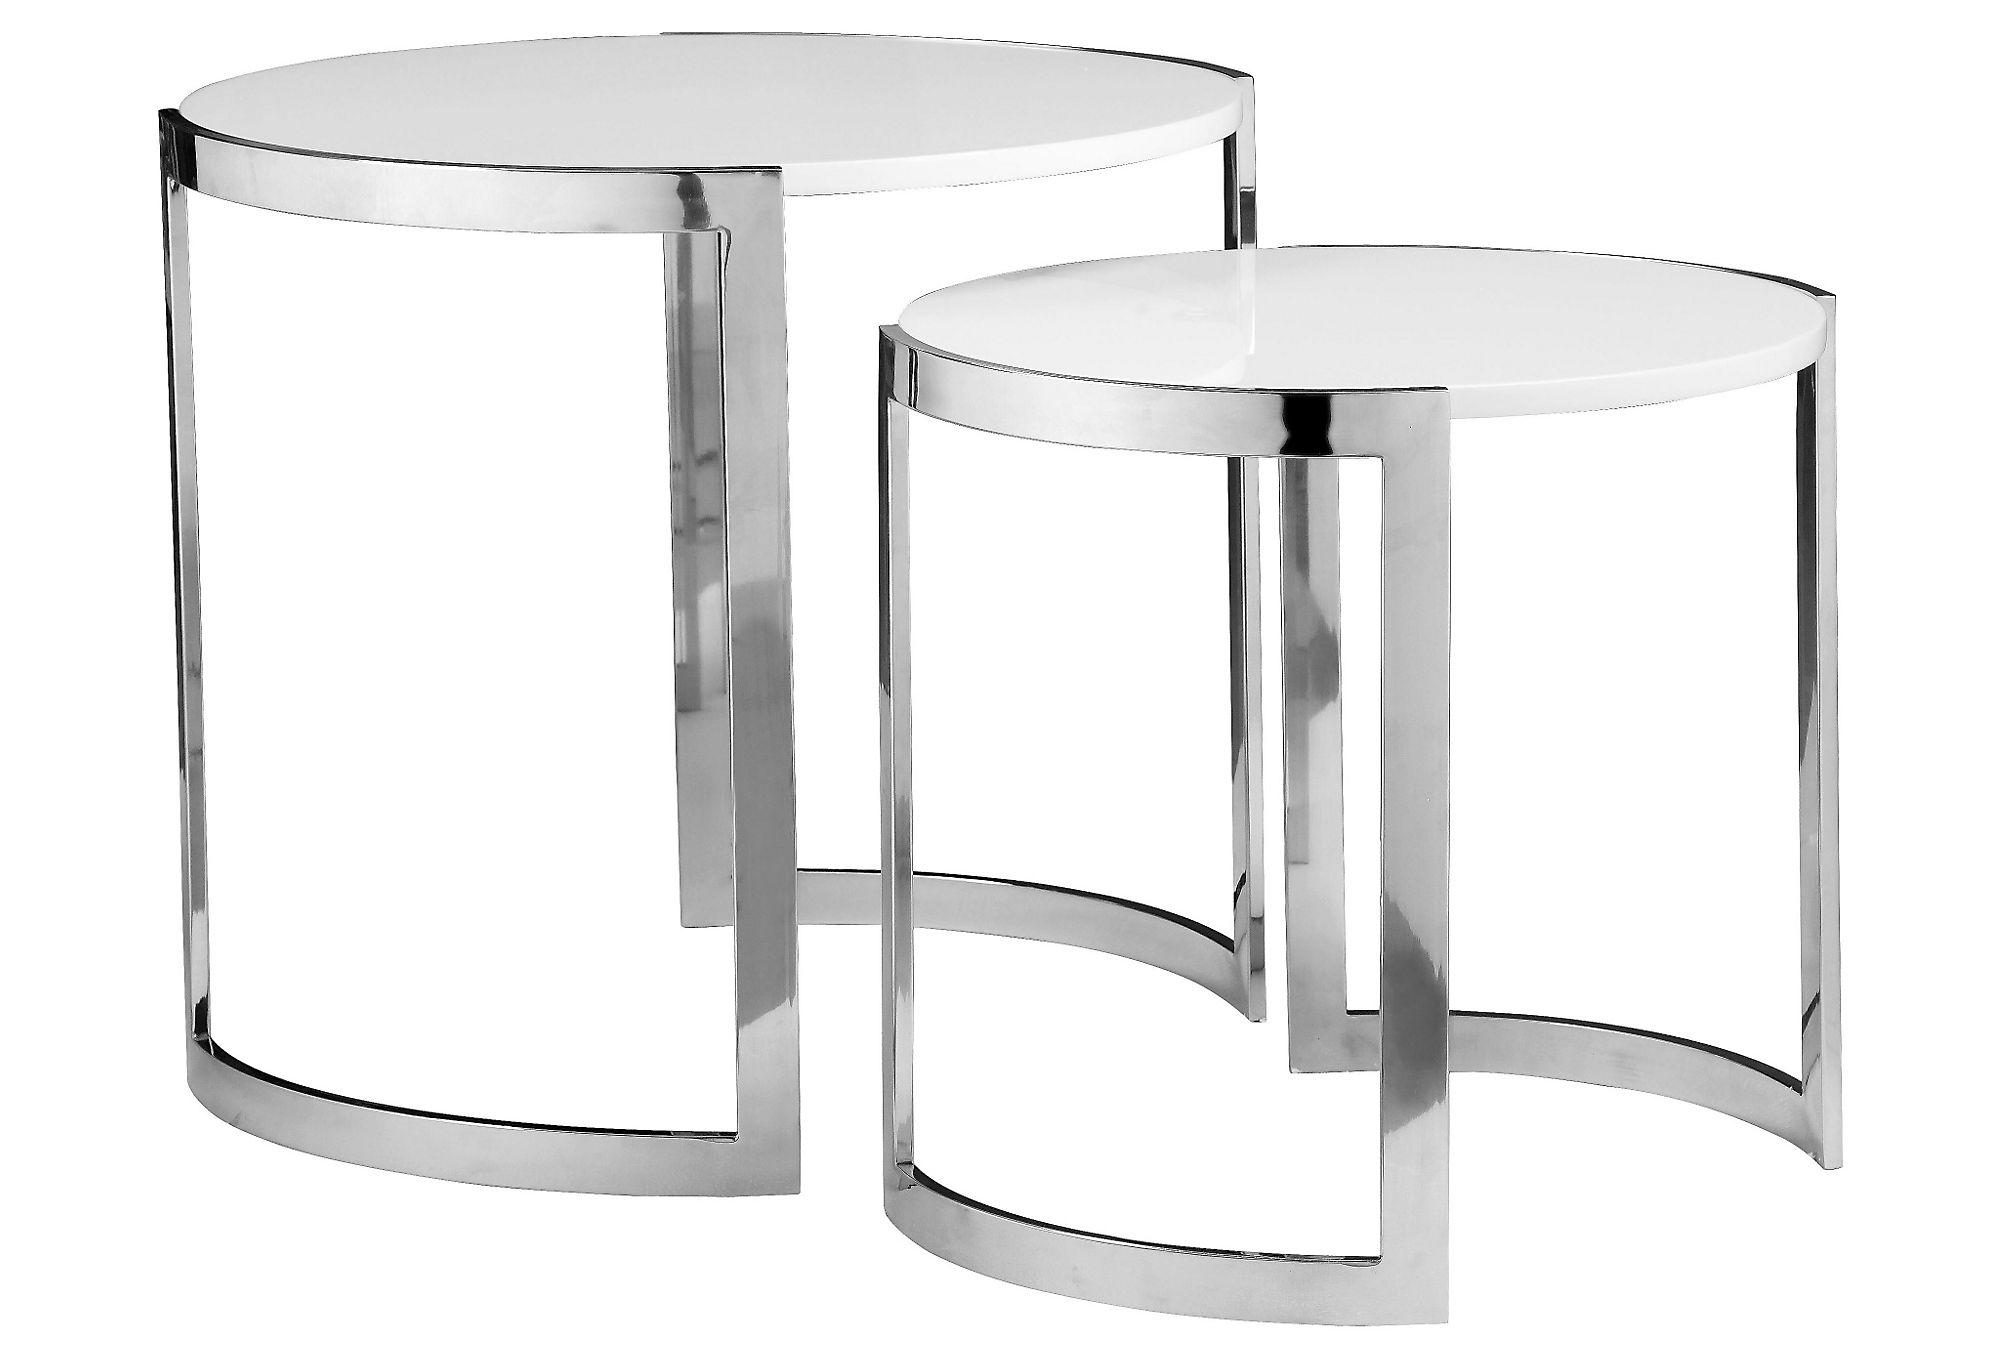 Orion Kids Nesting Side Tables White From One Kings Lane. Full resolution  image, nominally Width 2000 Height 1362 pixels, image with #2F2F2F.